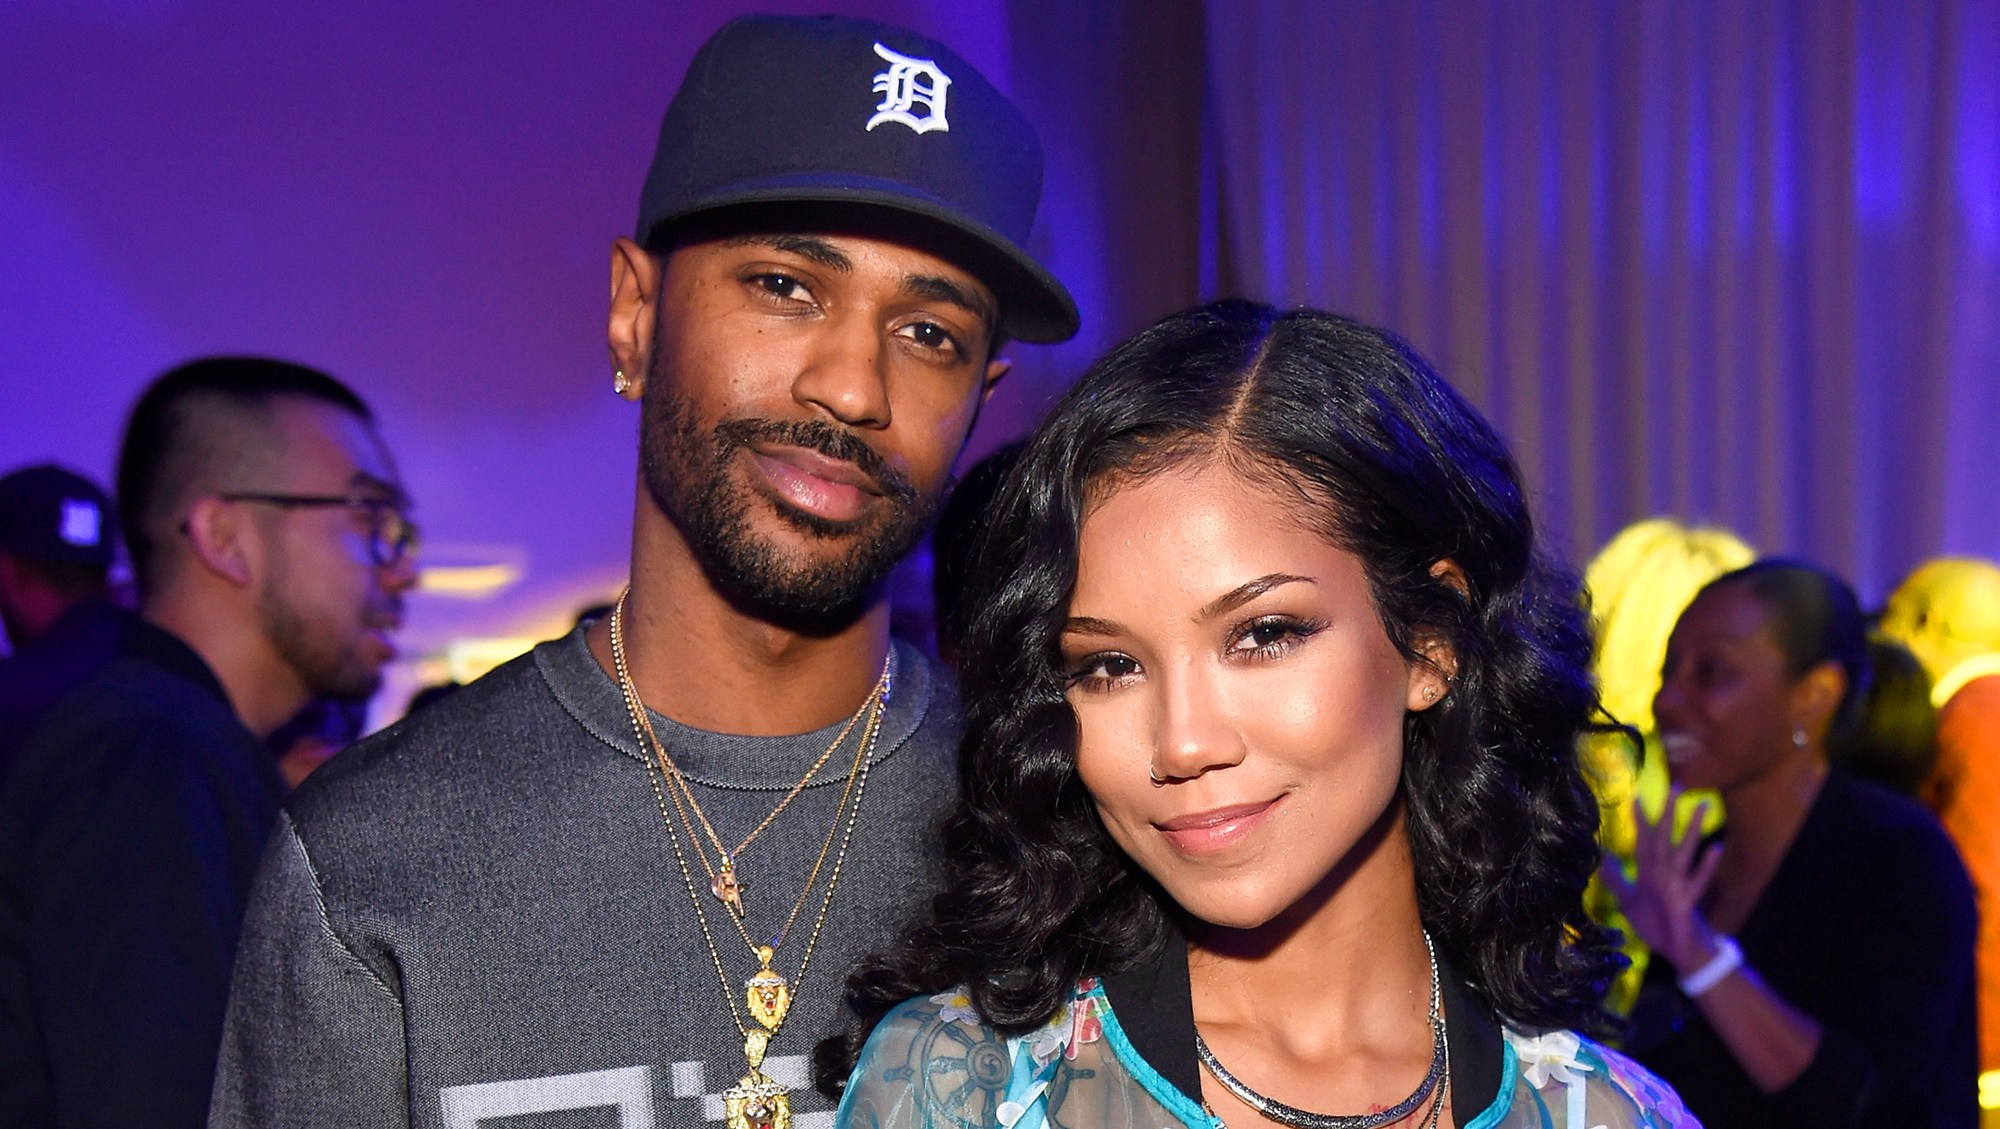 Big Sean and Jhene Aiko cheat Nicole Scherzinger